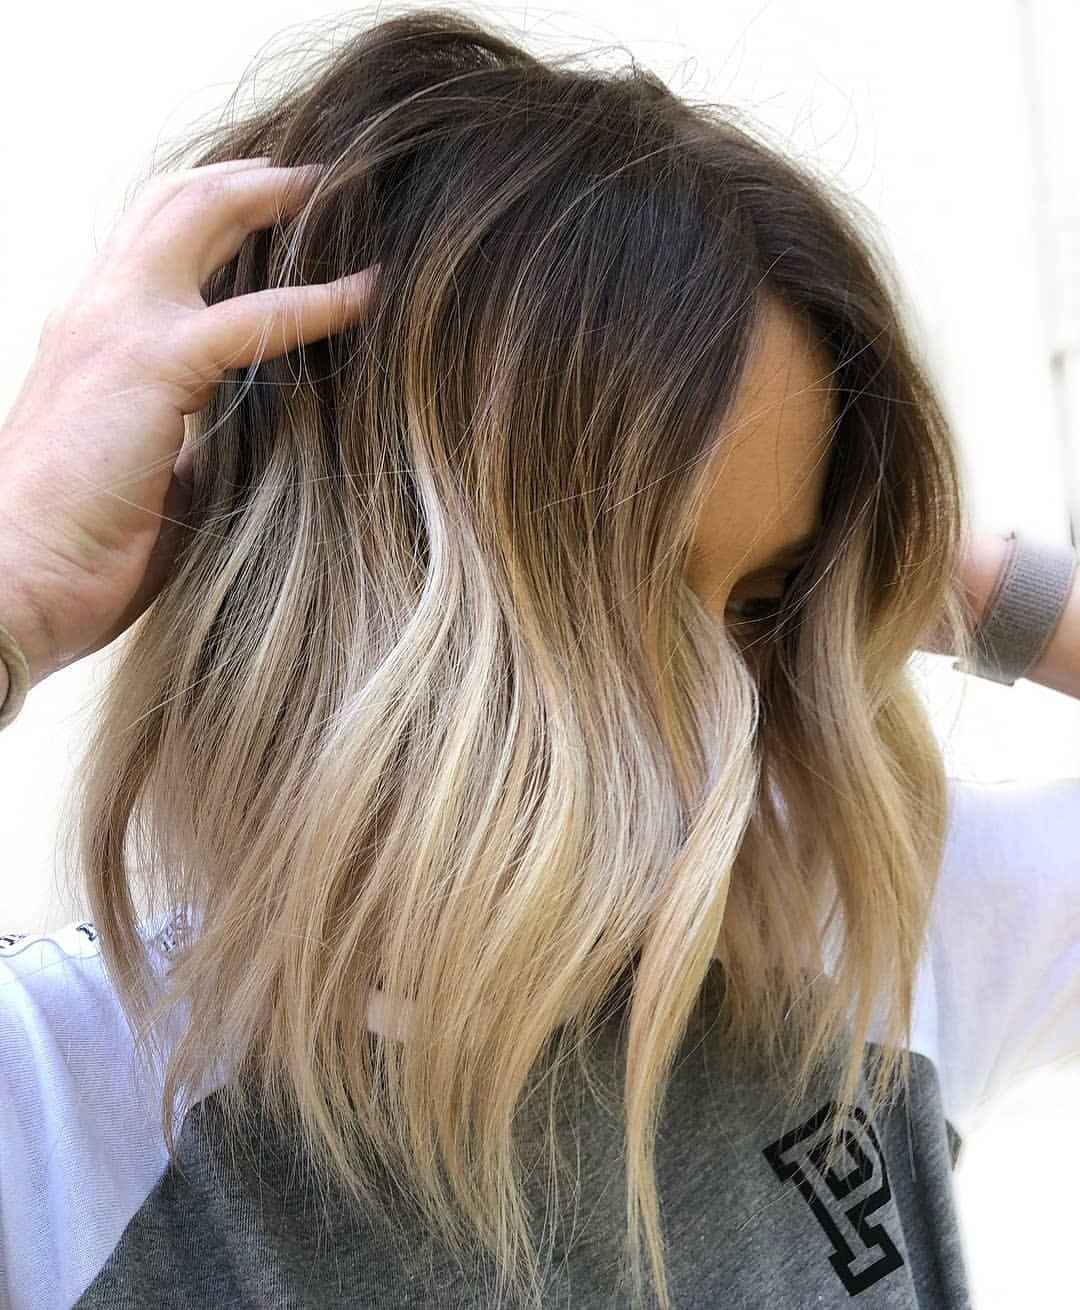 So Feeling This One By Hairbysharmichele Behindthechair Btchairbysharmichele Shadowro Blonde Ombre Short Hair Short Hair Styles Short Ombre Hair